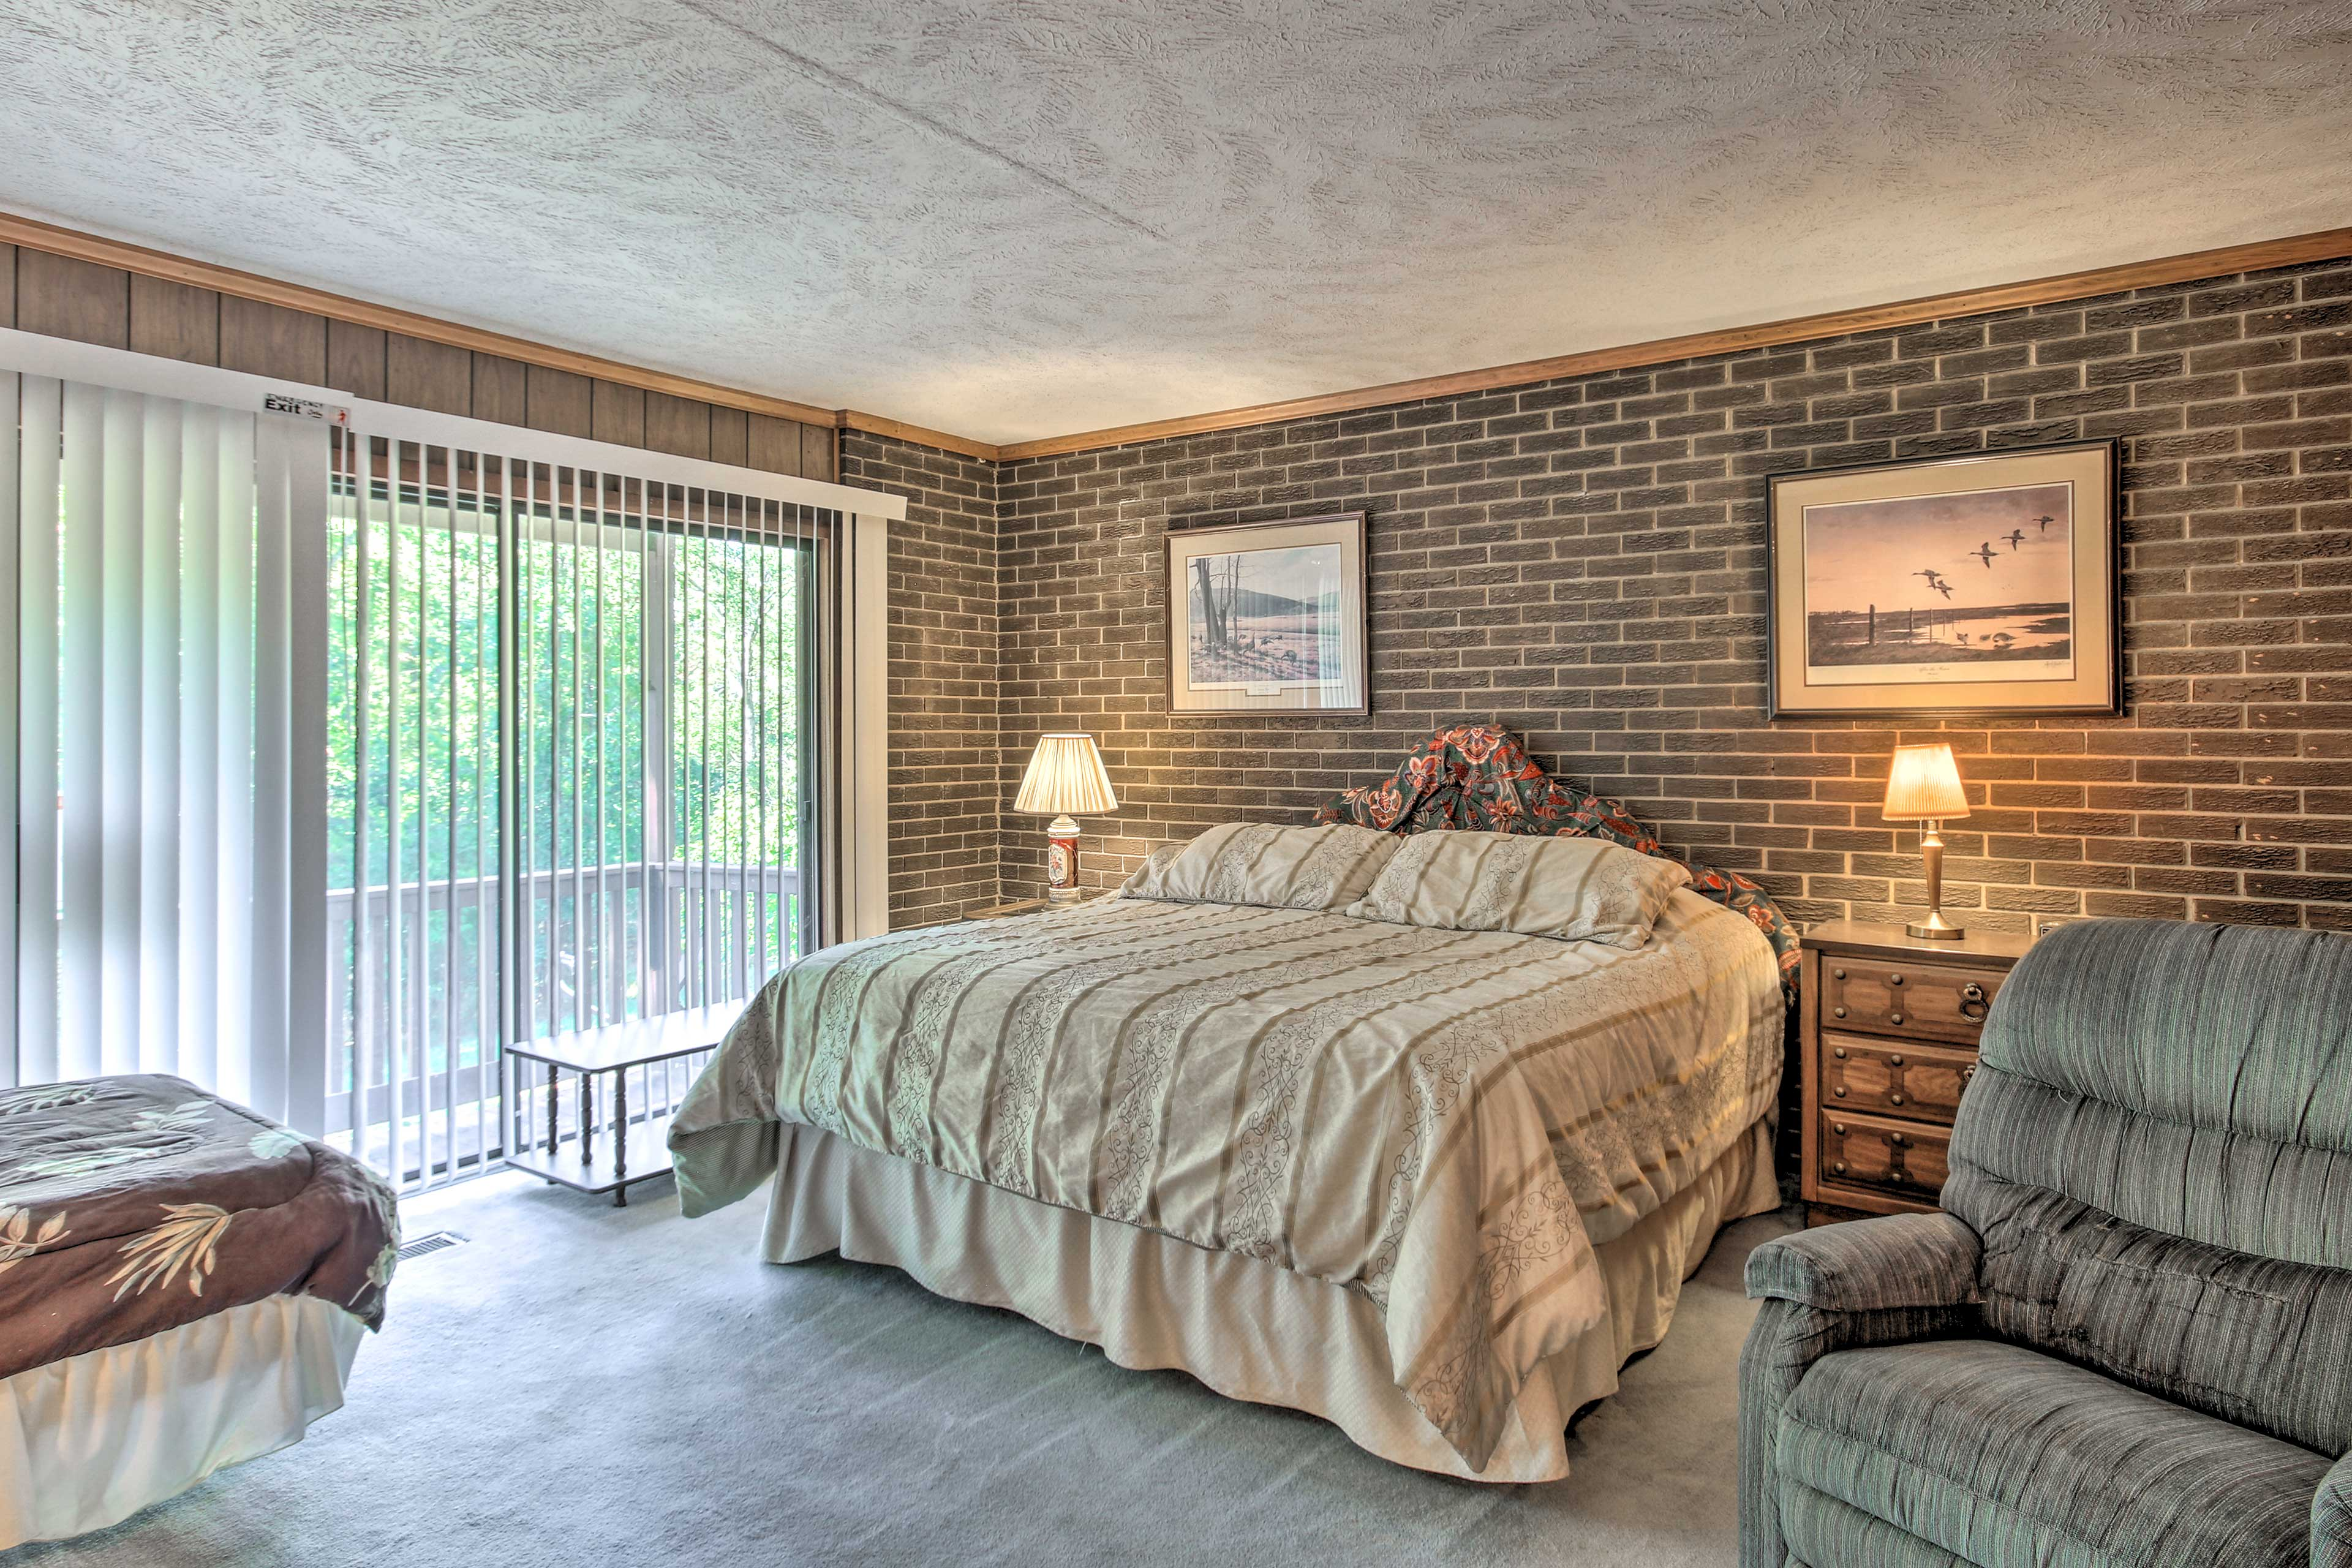 Lay back on the king-sized bed in the master bedroom.